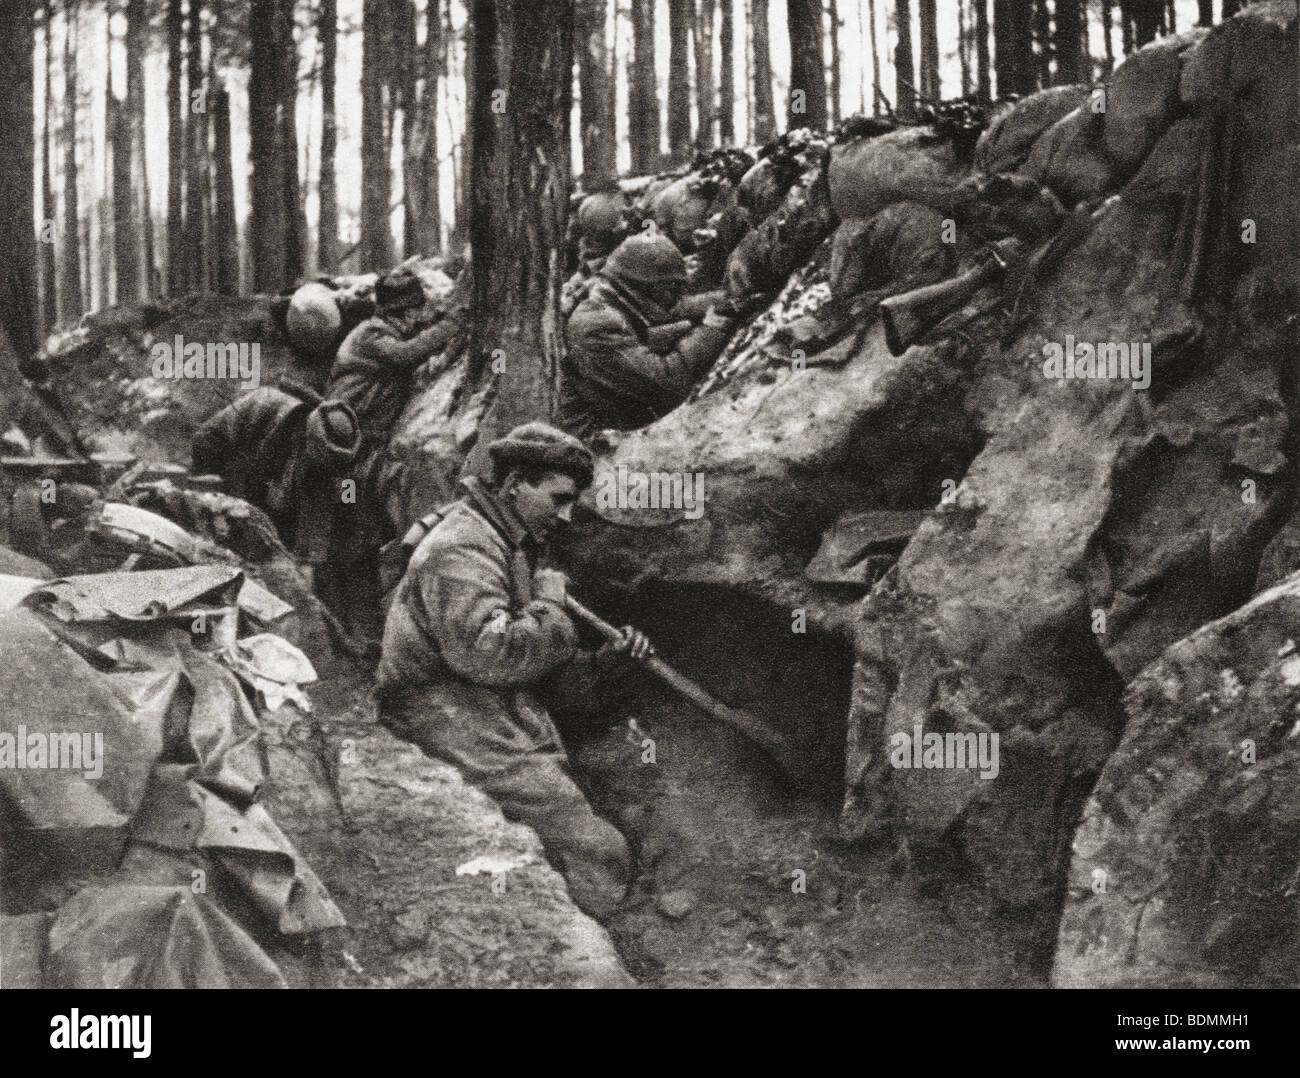 Specially enlisted navvies digging shelter trenches during First World War - Stock Image